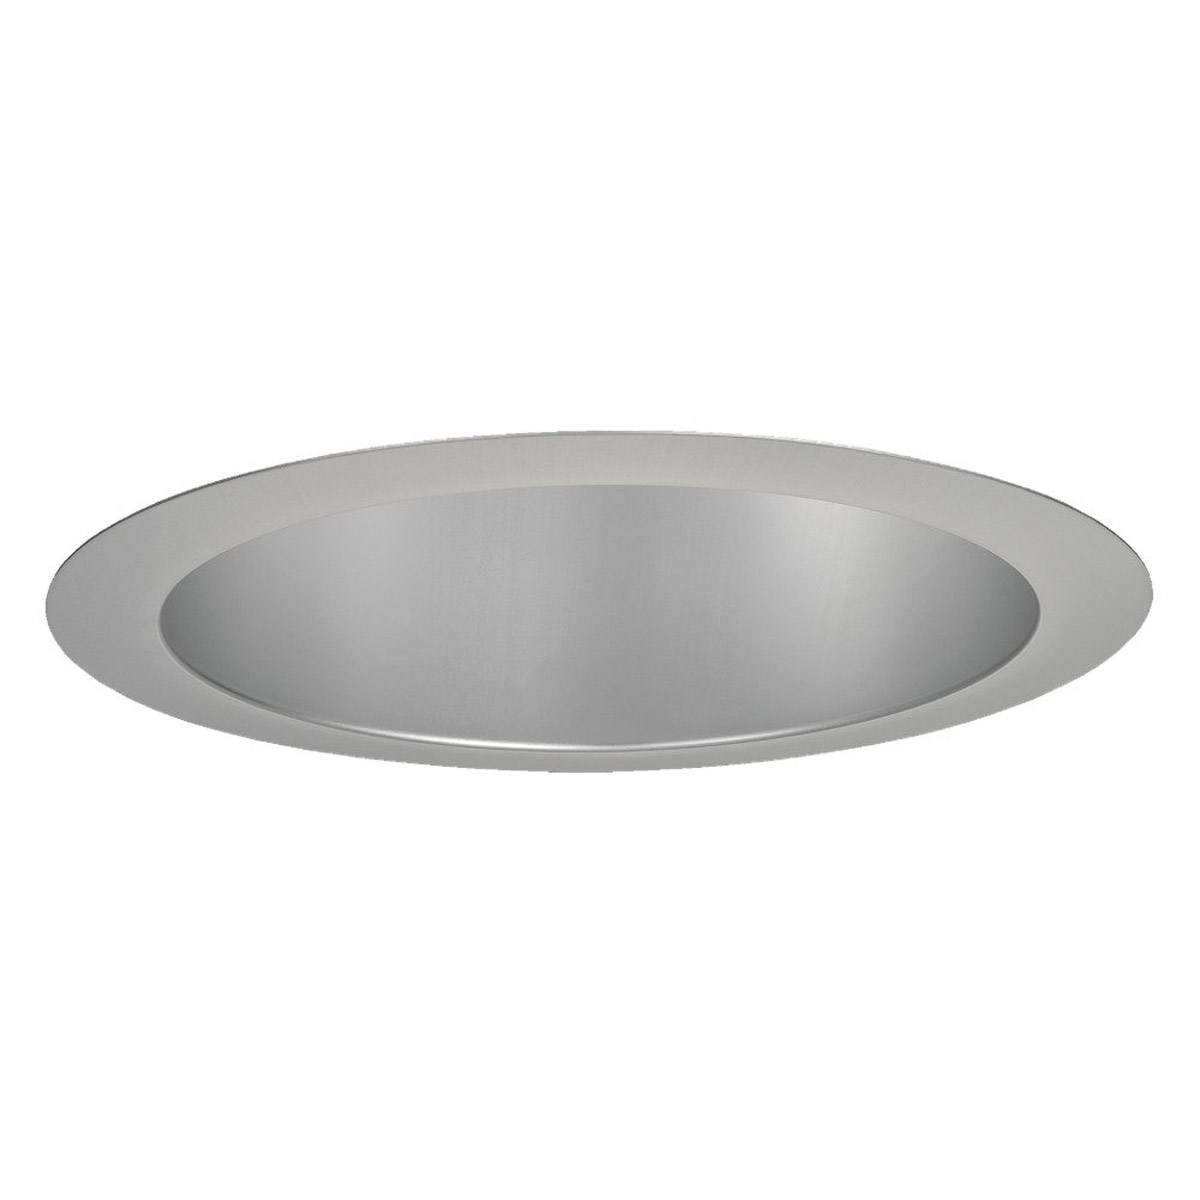 Sea Gull Lighting Signature Recessed Trim Only in Satin Nickel 11132AT-849 photo